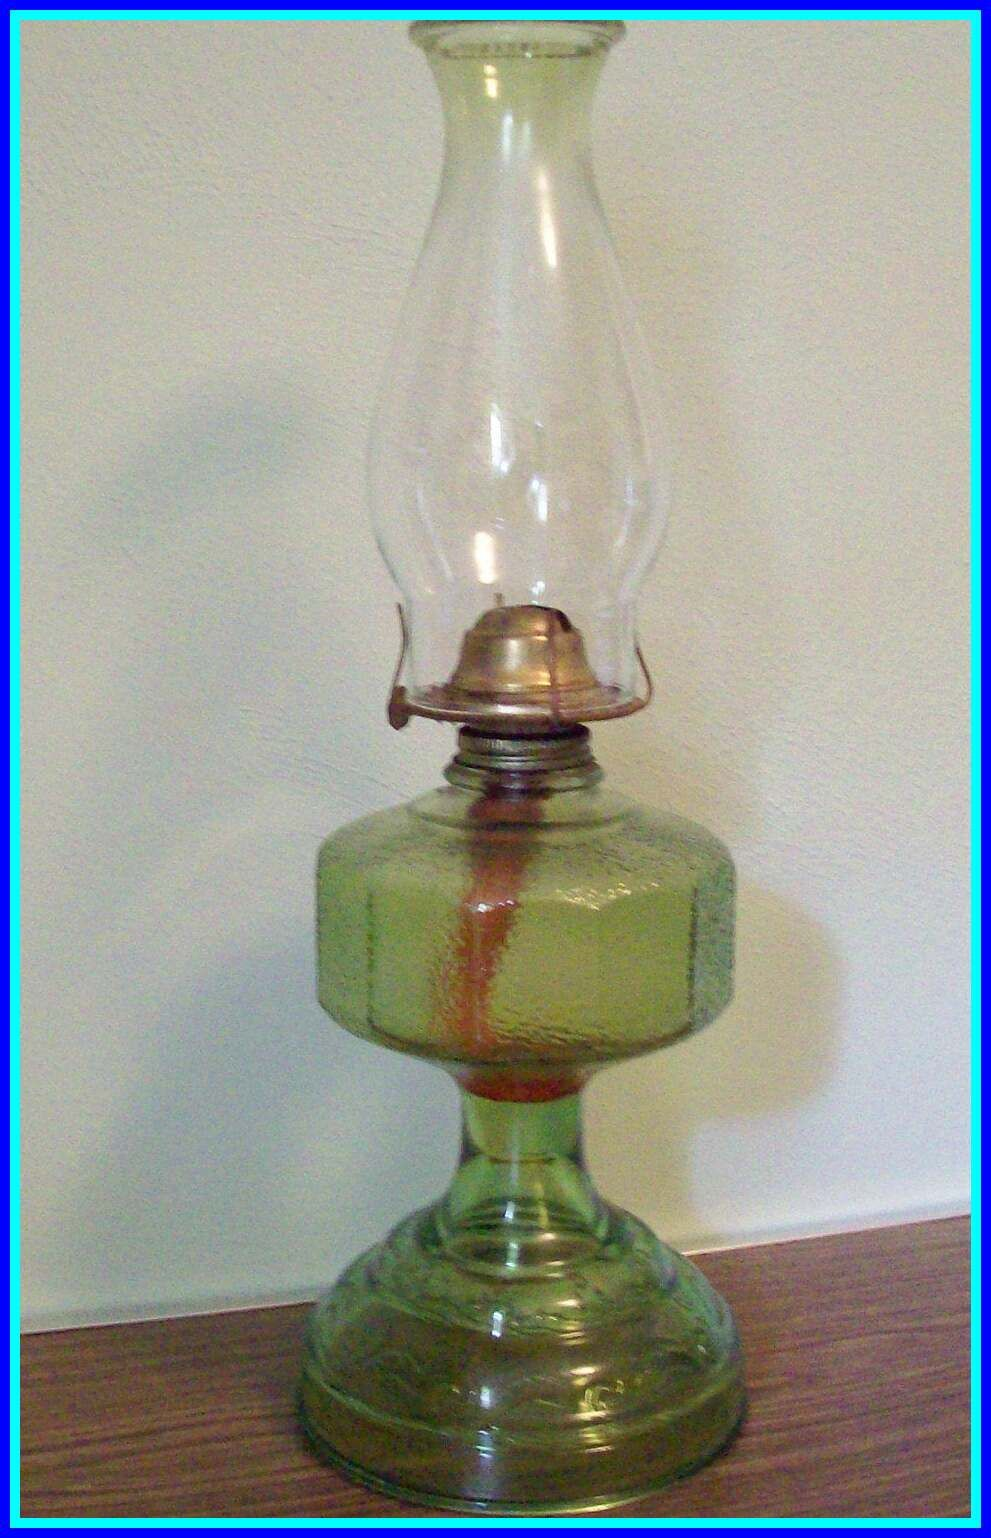 94 Reference Of Vintage Lamps Green In 2020 Oil Lamps Vintage Lamps Lamp